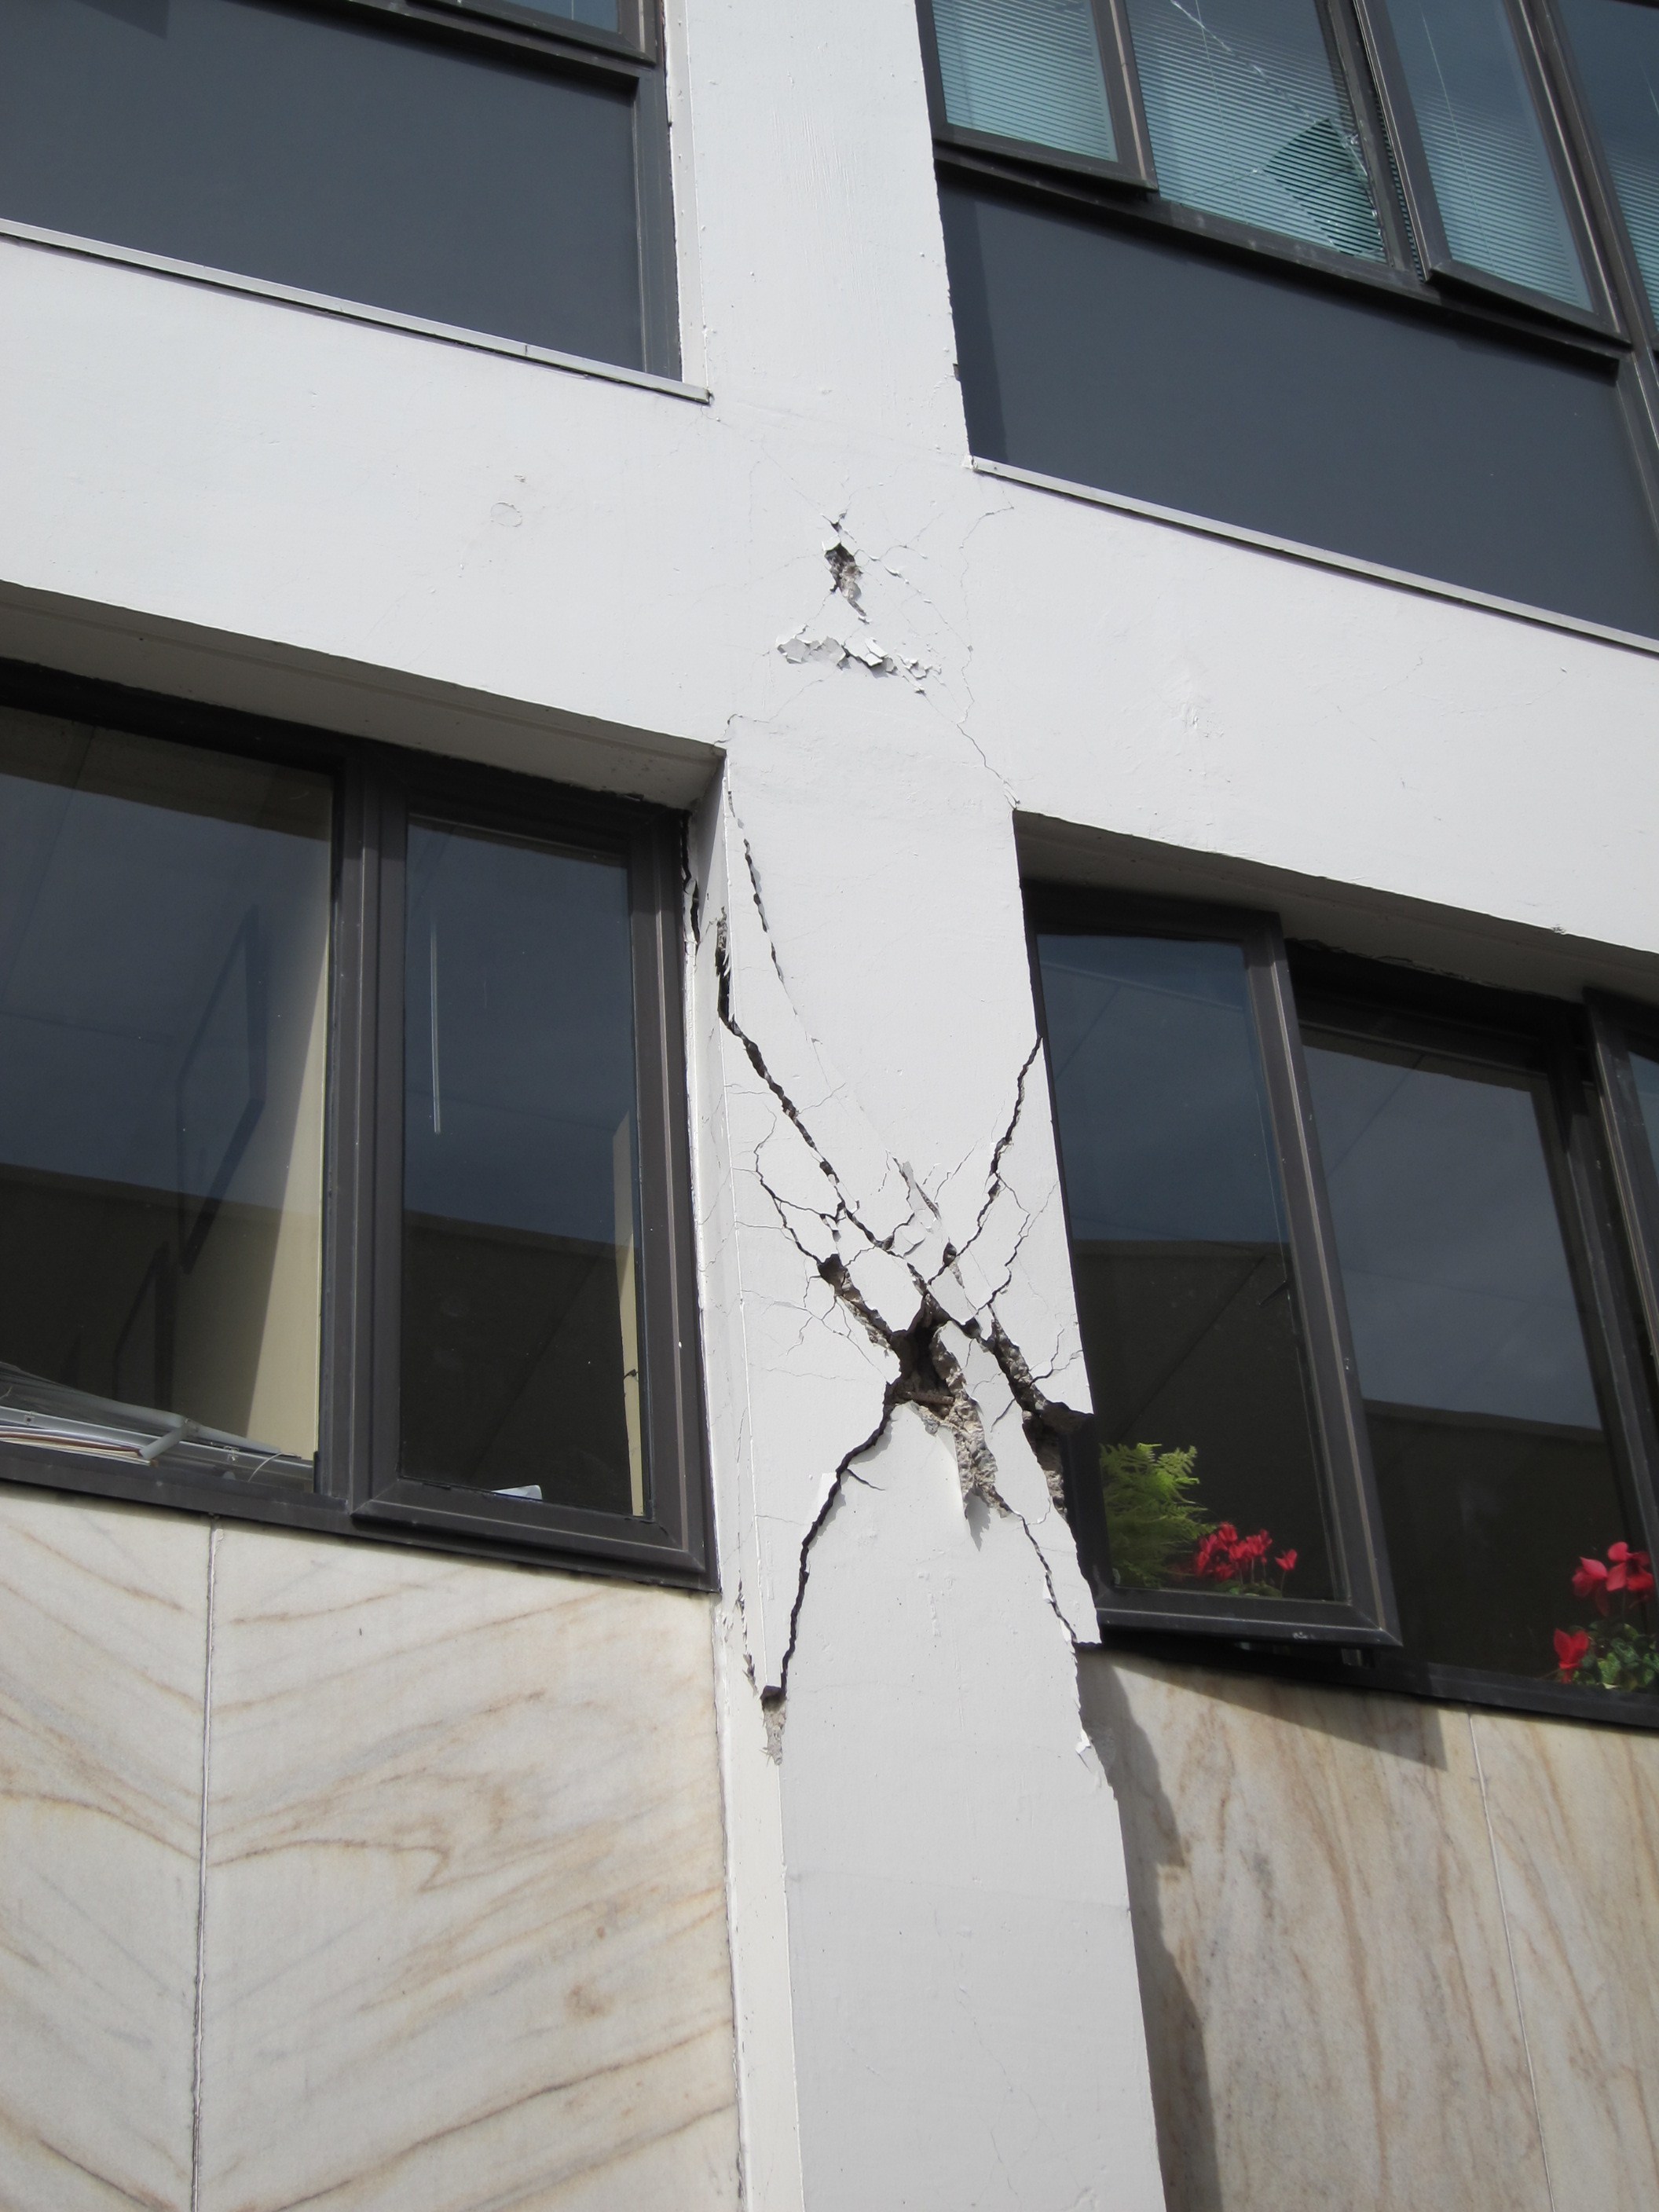 Home Concrete Buildings Damaged In Earthquakes